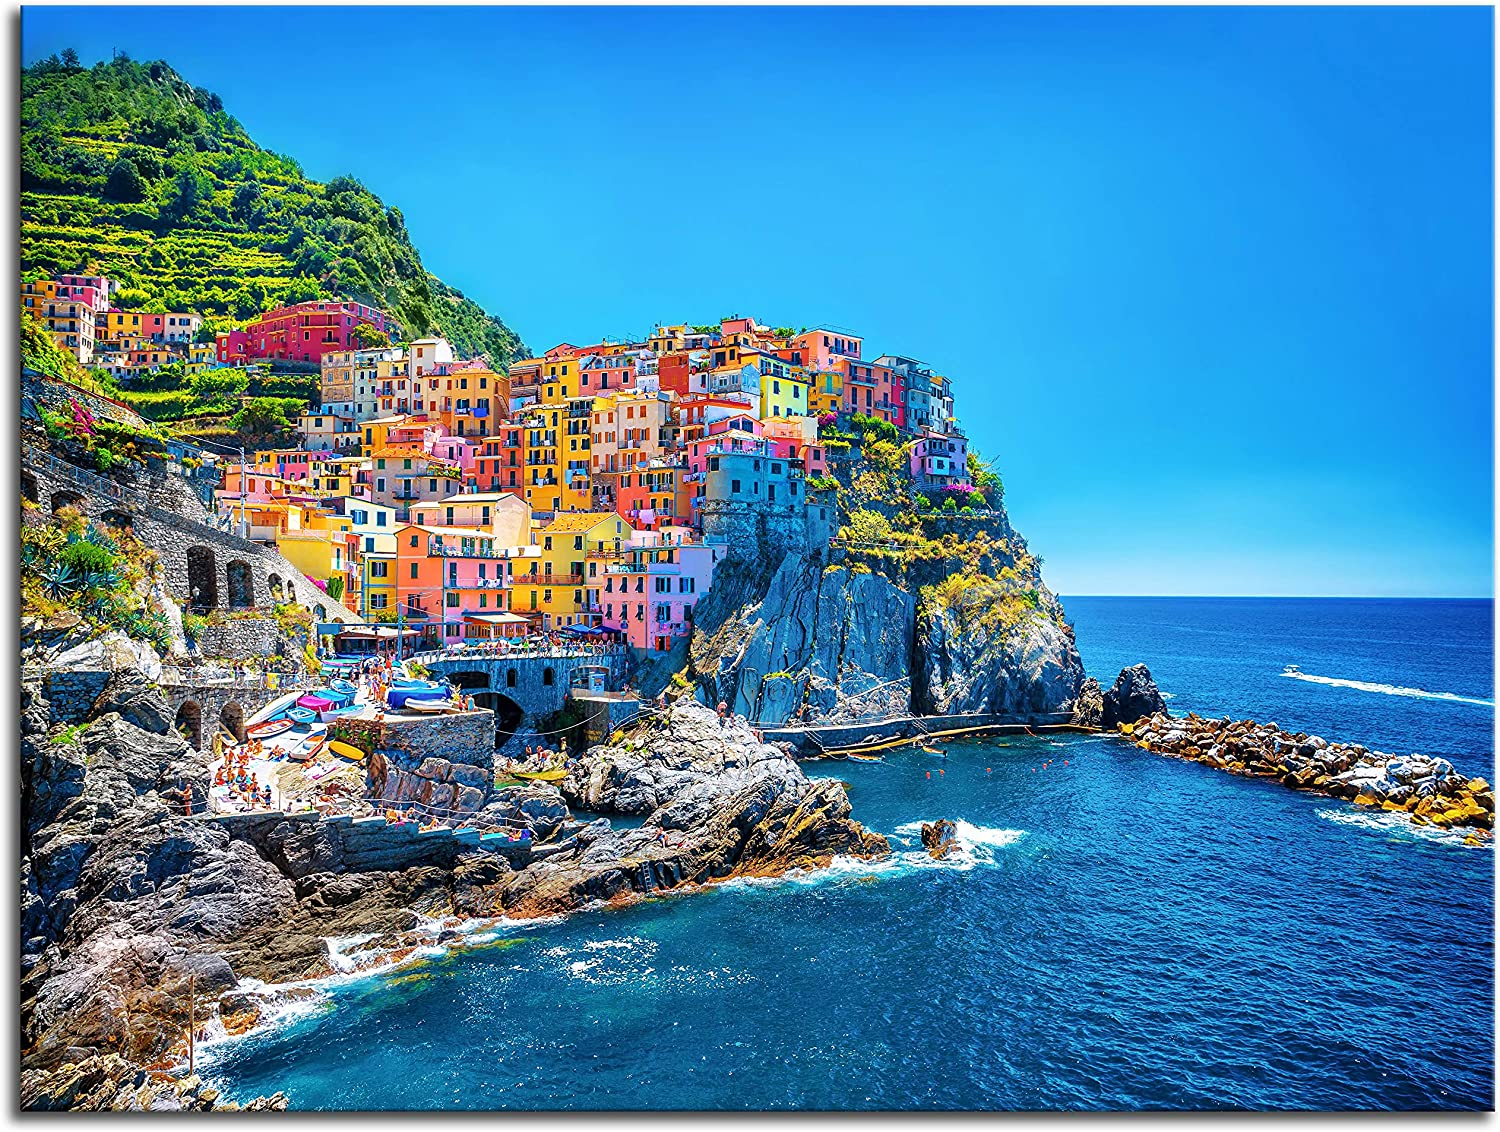 NAN Wind Modern Canvas Painting Wall Art Cityscape Traditional Port Mediterranean Sea Cinque Terre Italy Coast Landscape Print On Canvas Giclee Artwork for Wall Decor